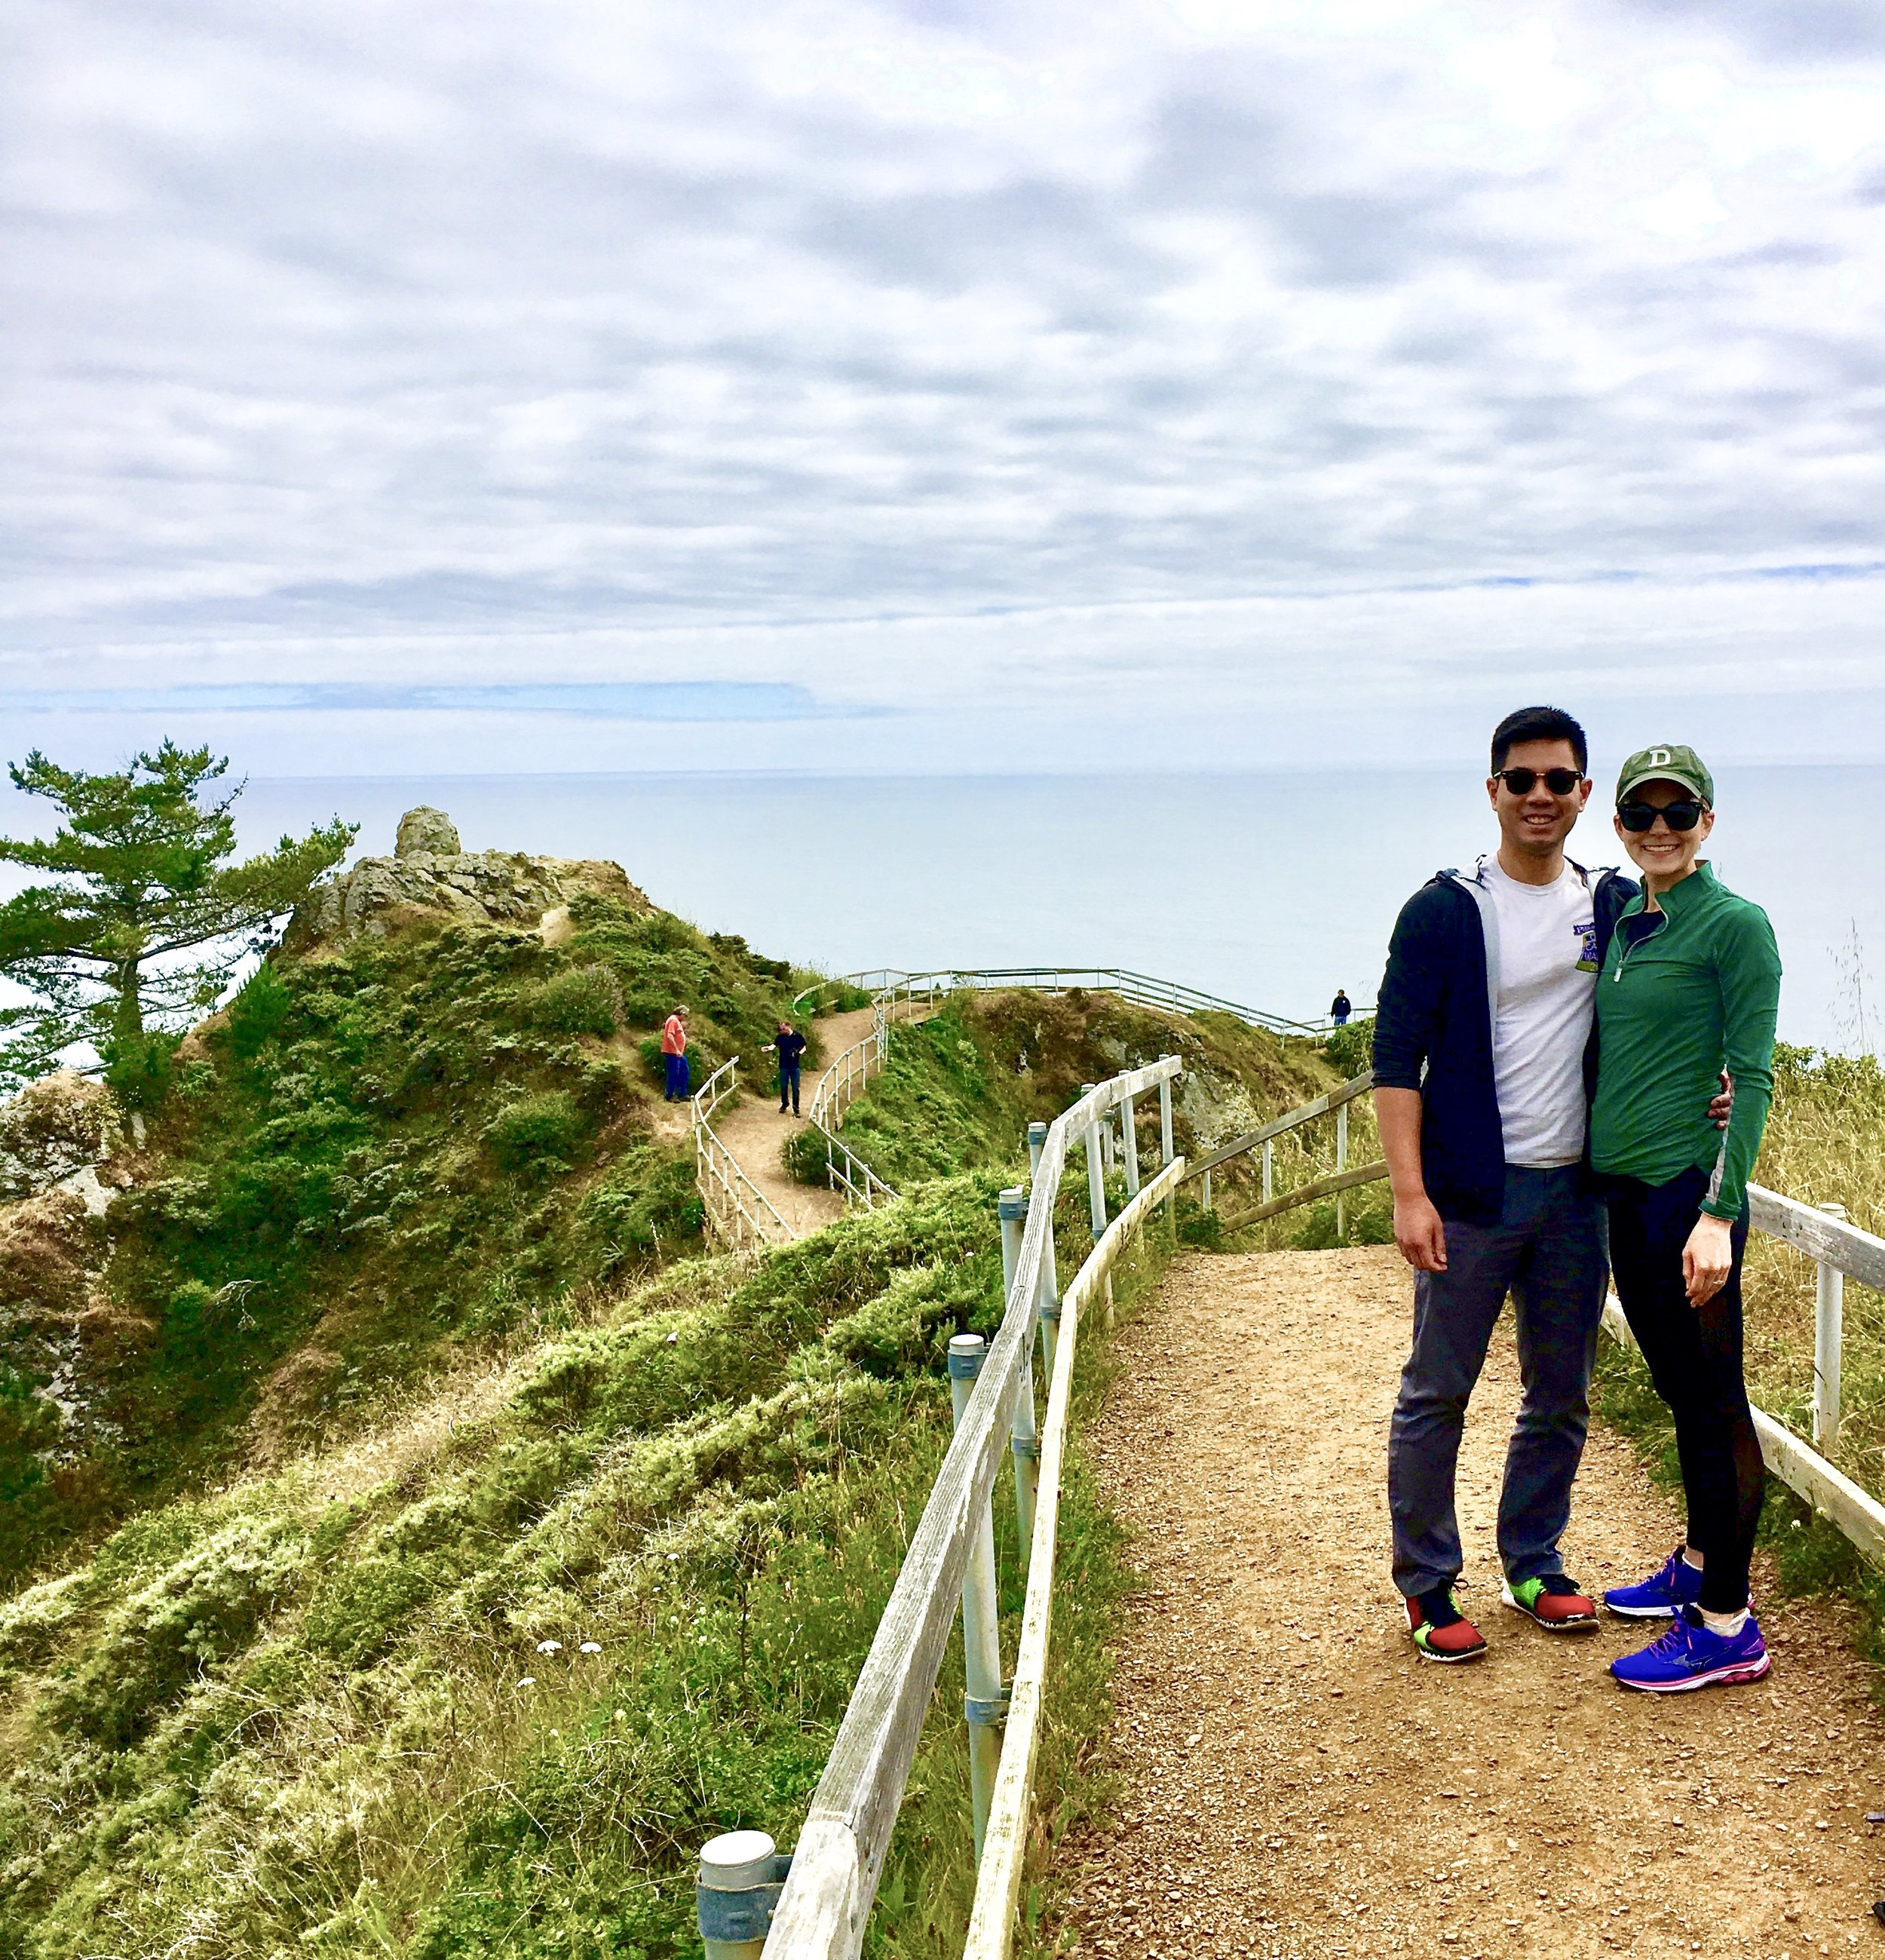 My husband and I at Muir Beach in northern California a few weeks ago. I'm sporting my EltaMD sunscreen, EcoLips SPF lip balm, Kastel UPF 30 pullover, UPF pants, sunglasses, and a baseball hat.